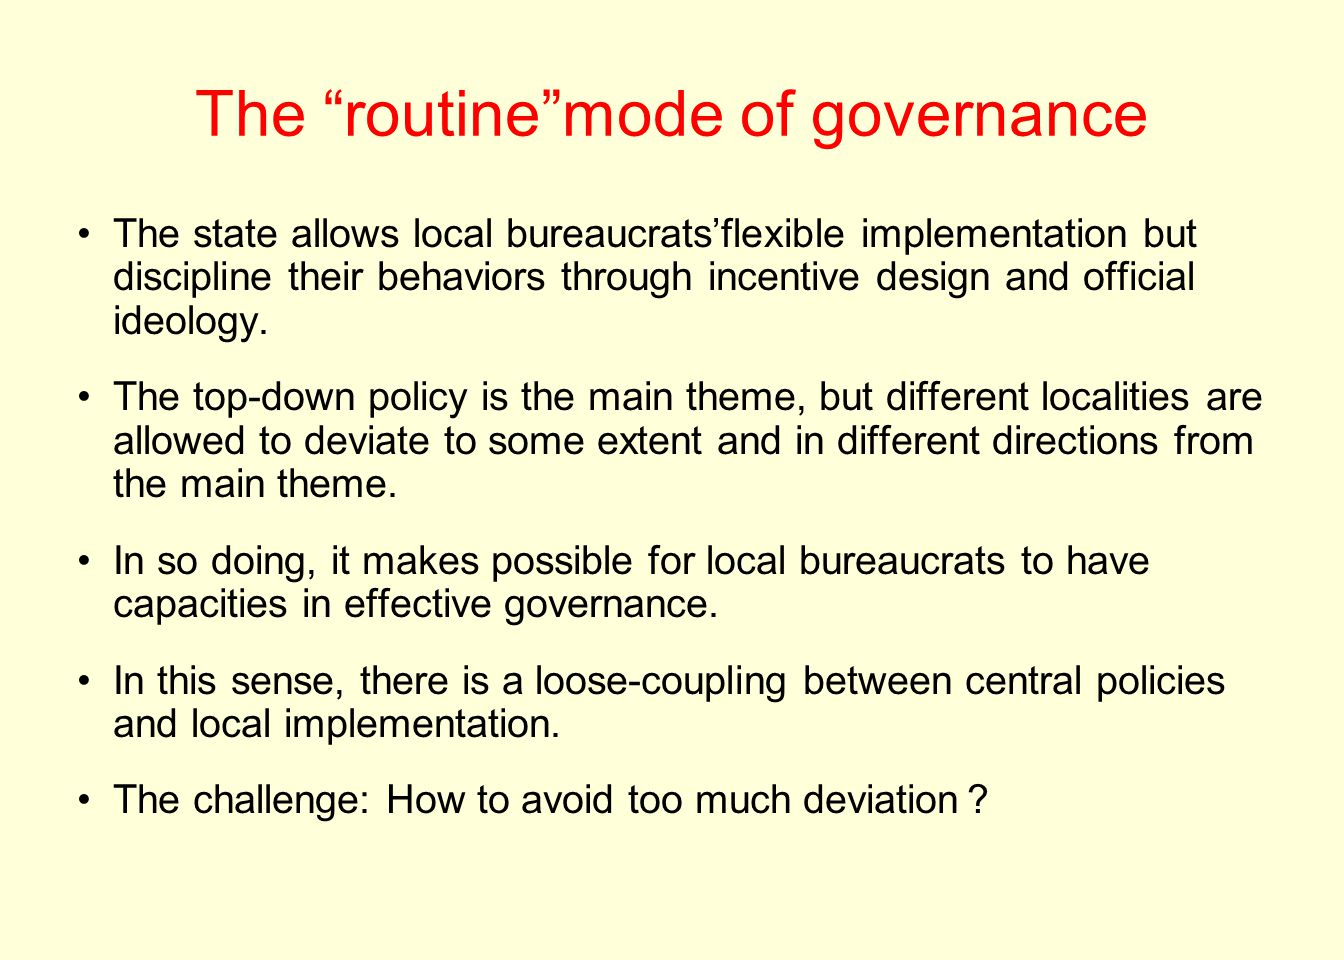 The routine mode of governance